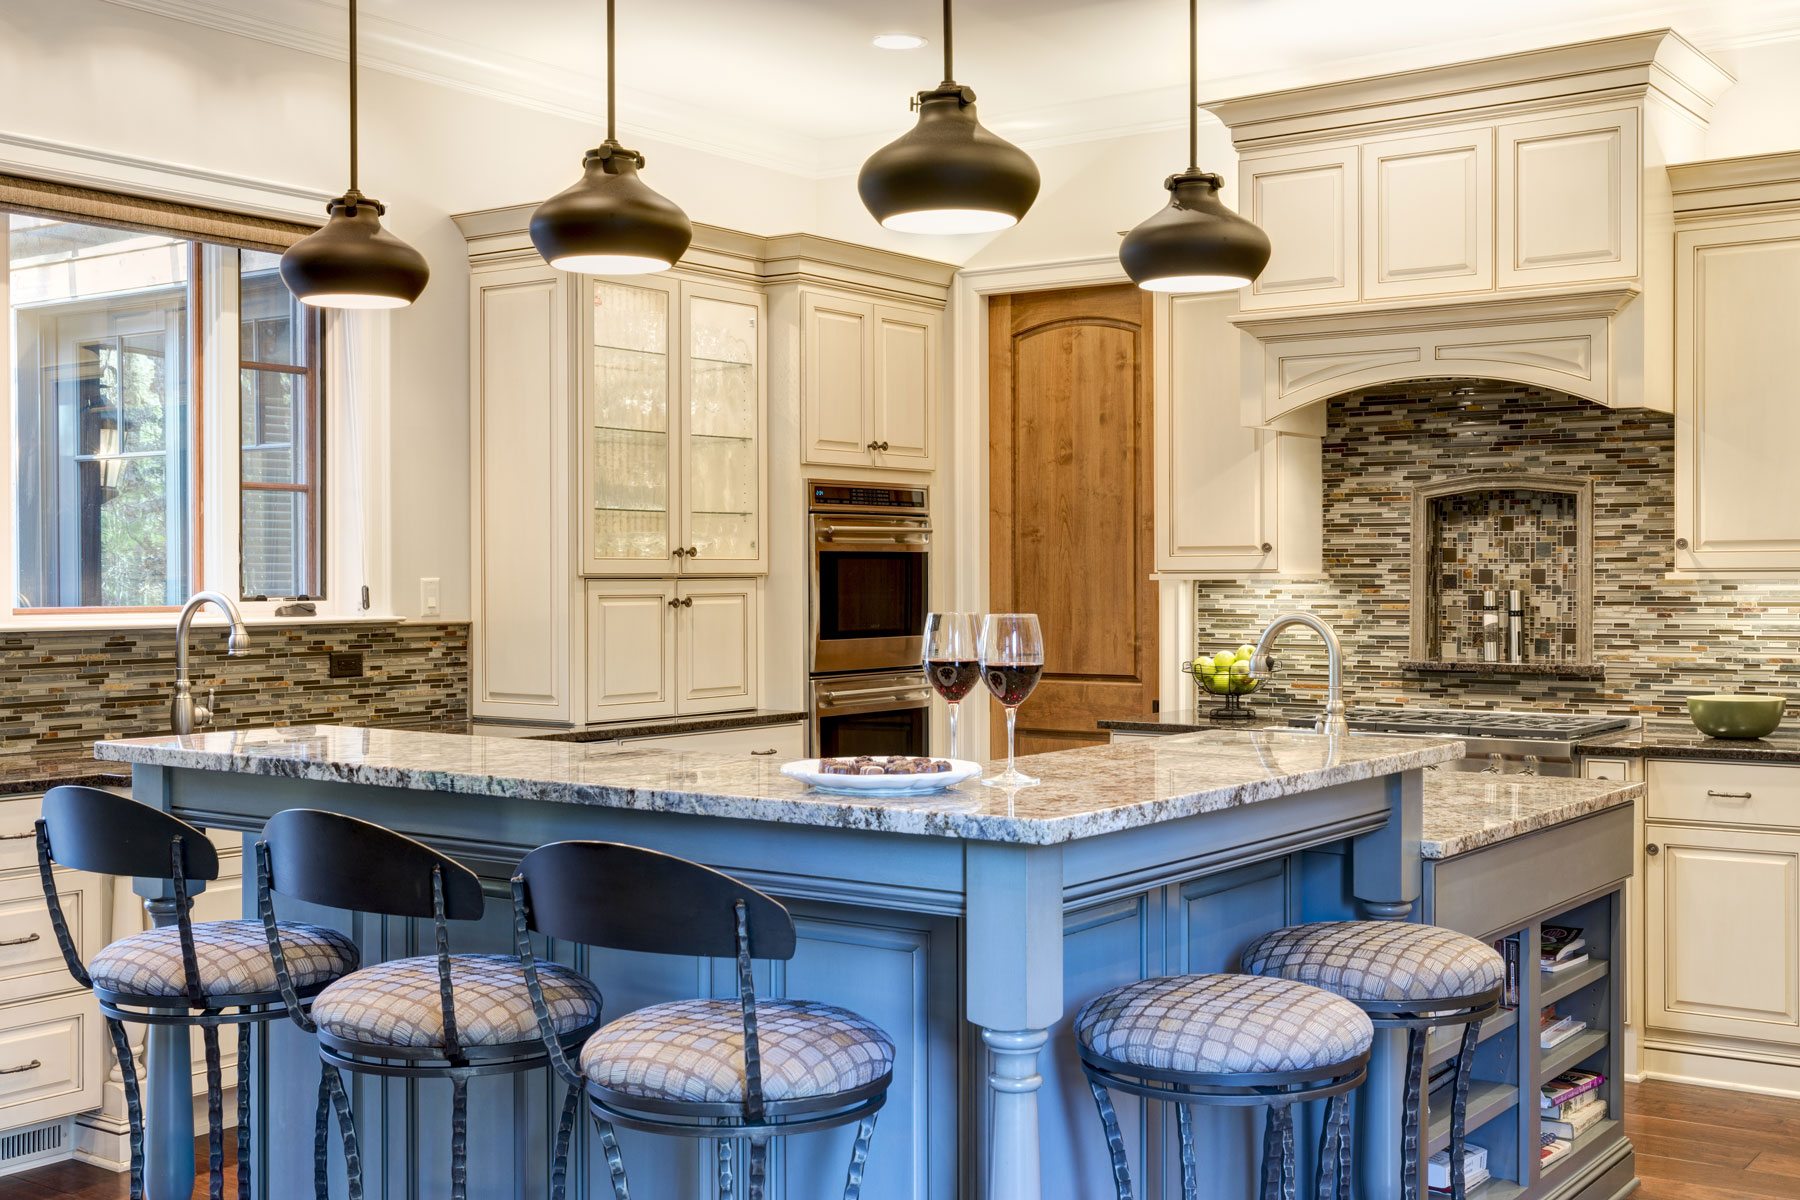 large-kitchen-L-shaped-island | ACM Design Architecture ...